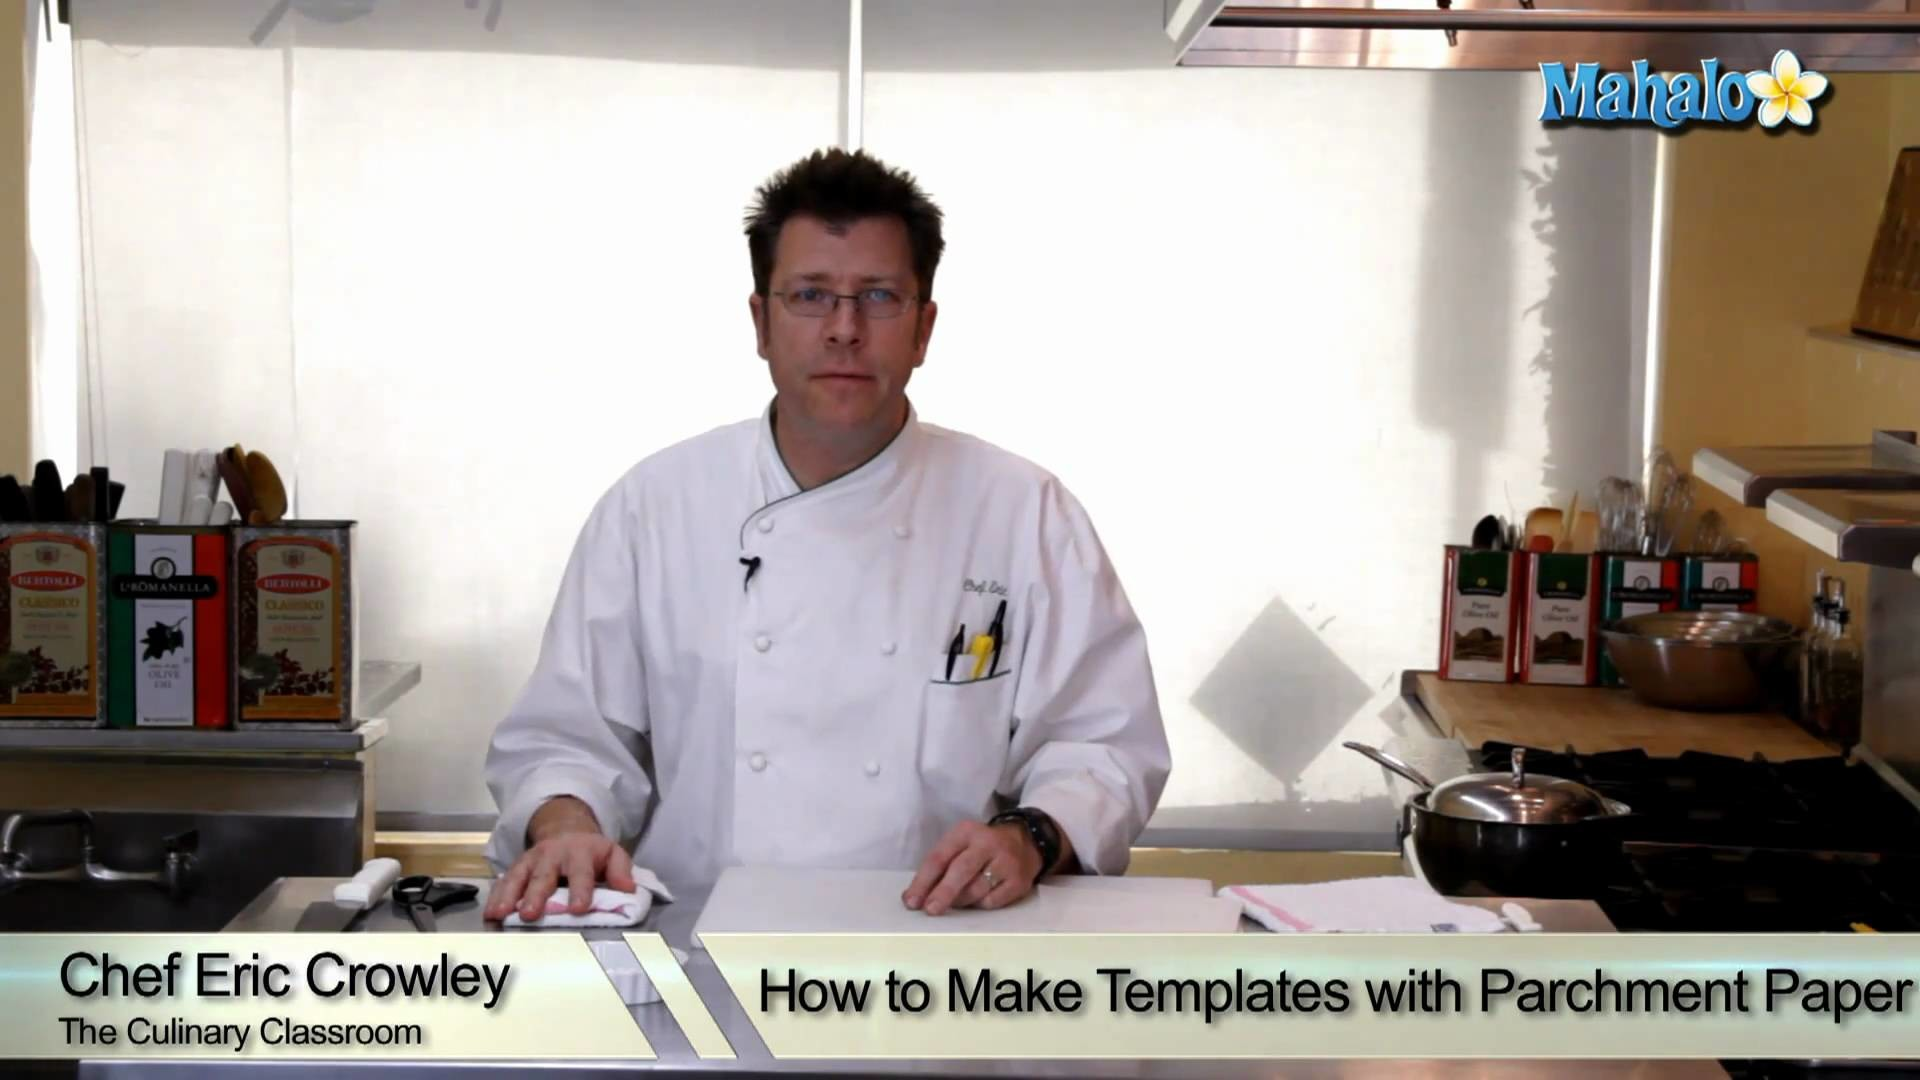 How to Make Templates with Parchment Paper